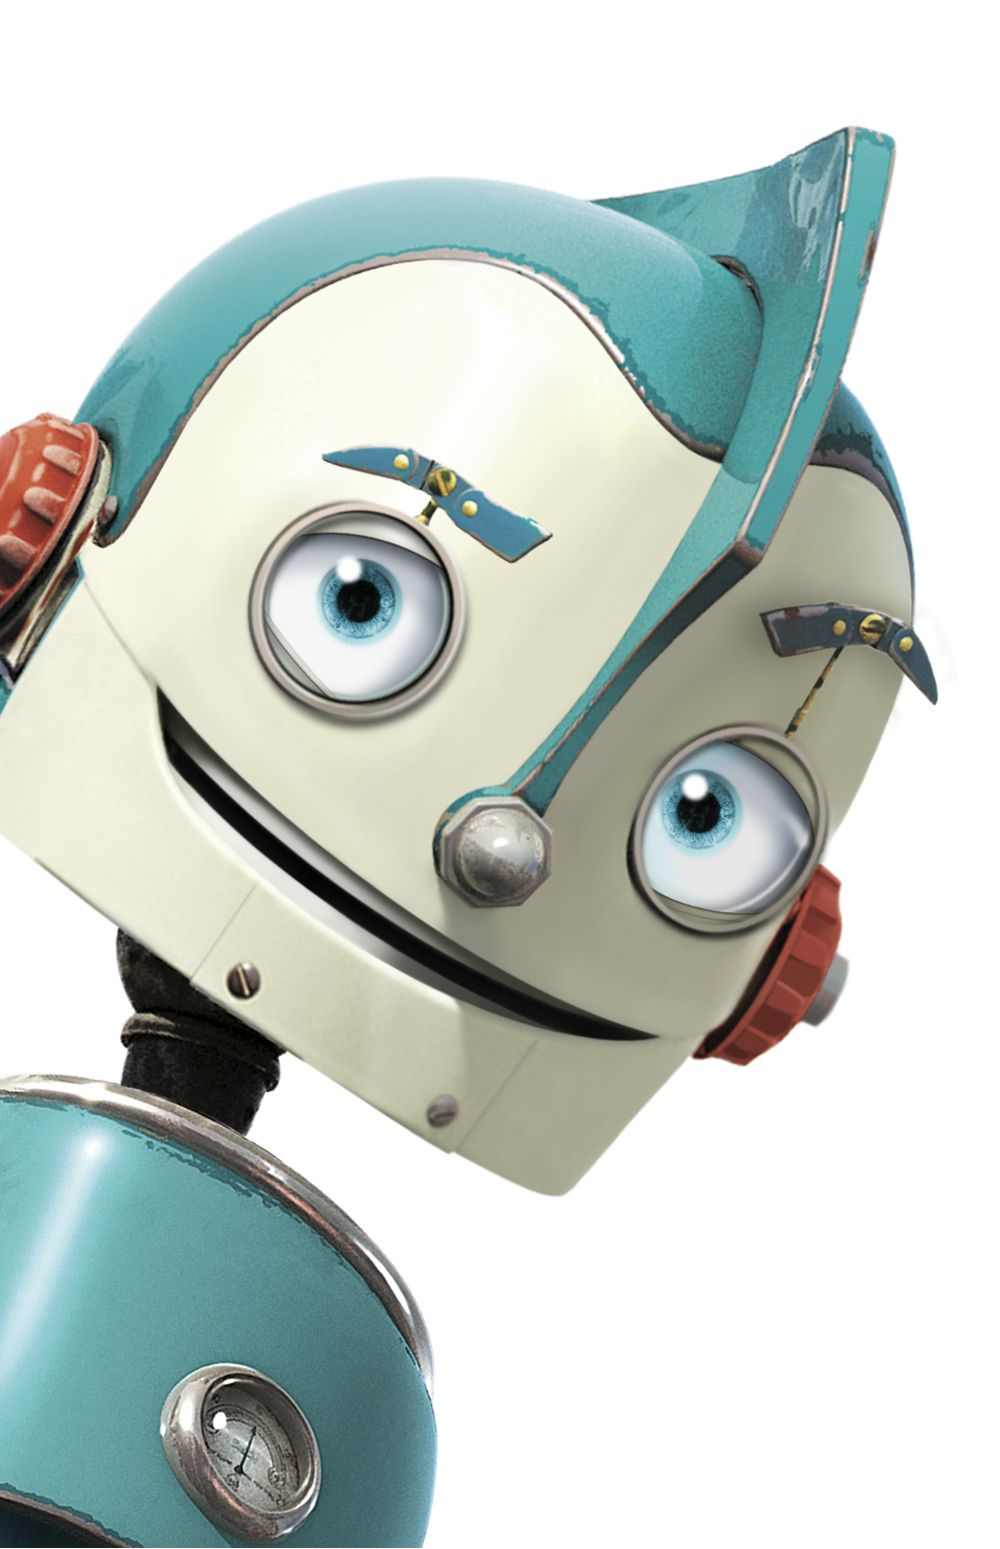 Valiant From Animated Movie Robots Animated Movies Characters Blue Sky Studios Beloved Movie